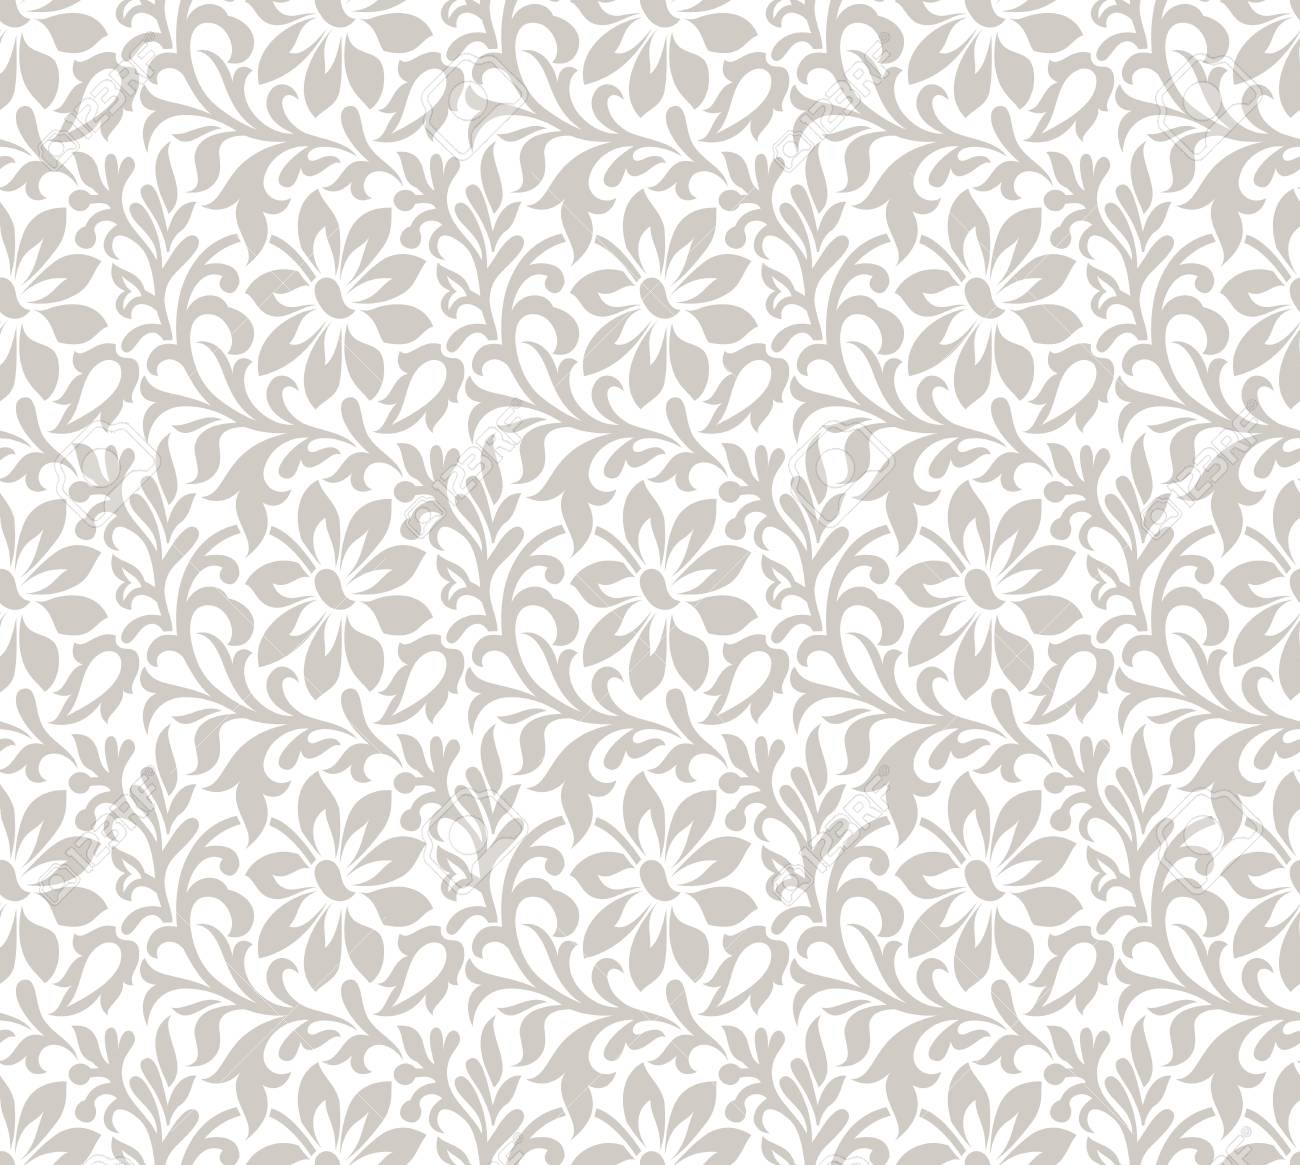 Floral Fancy Wallpaper Stock Vector